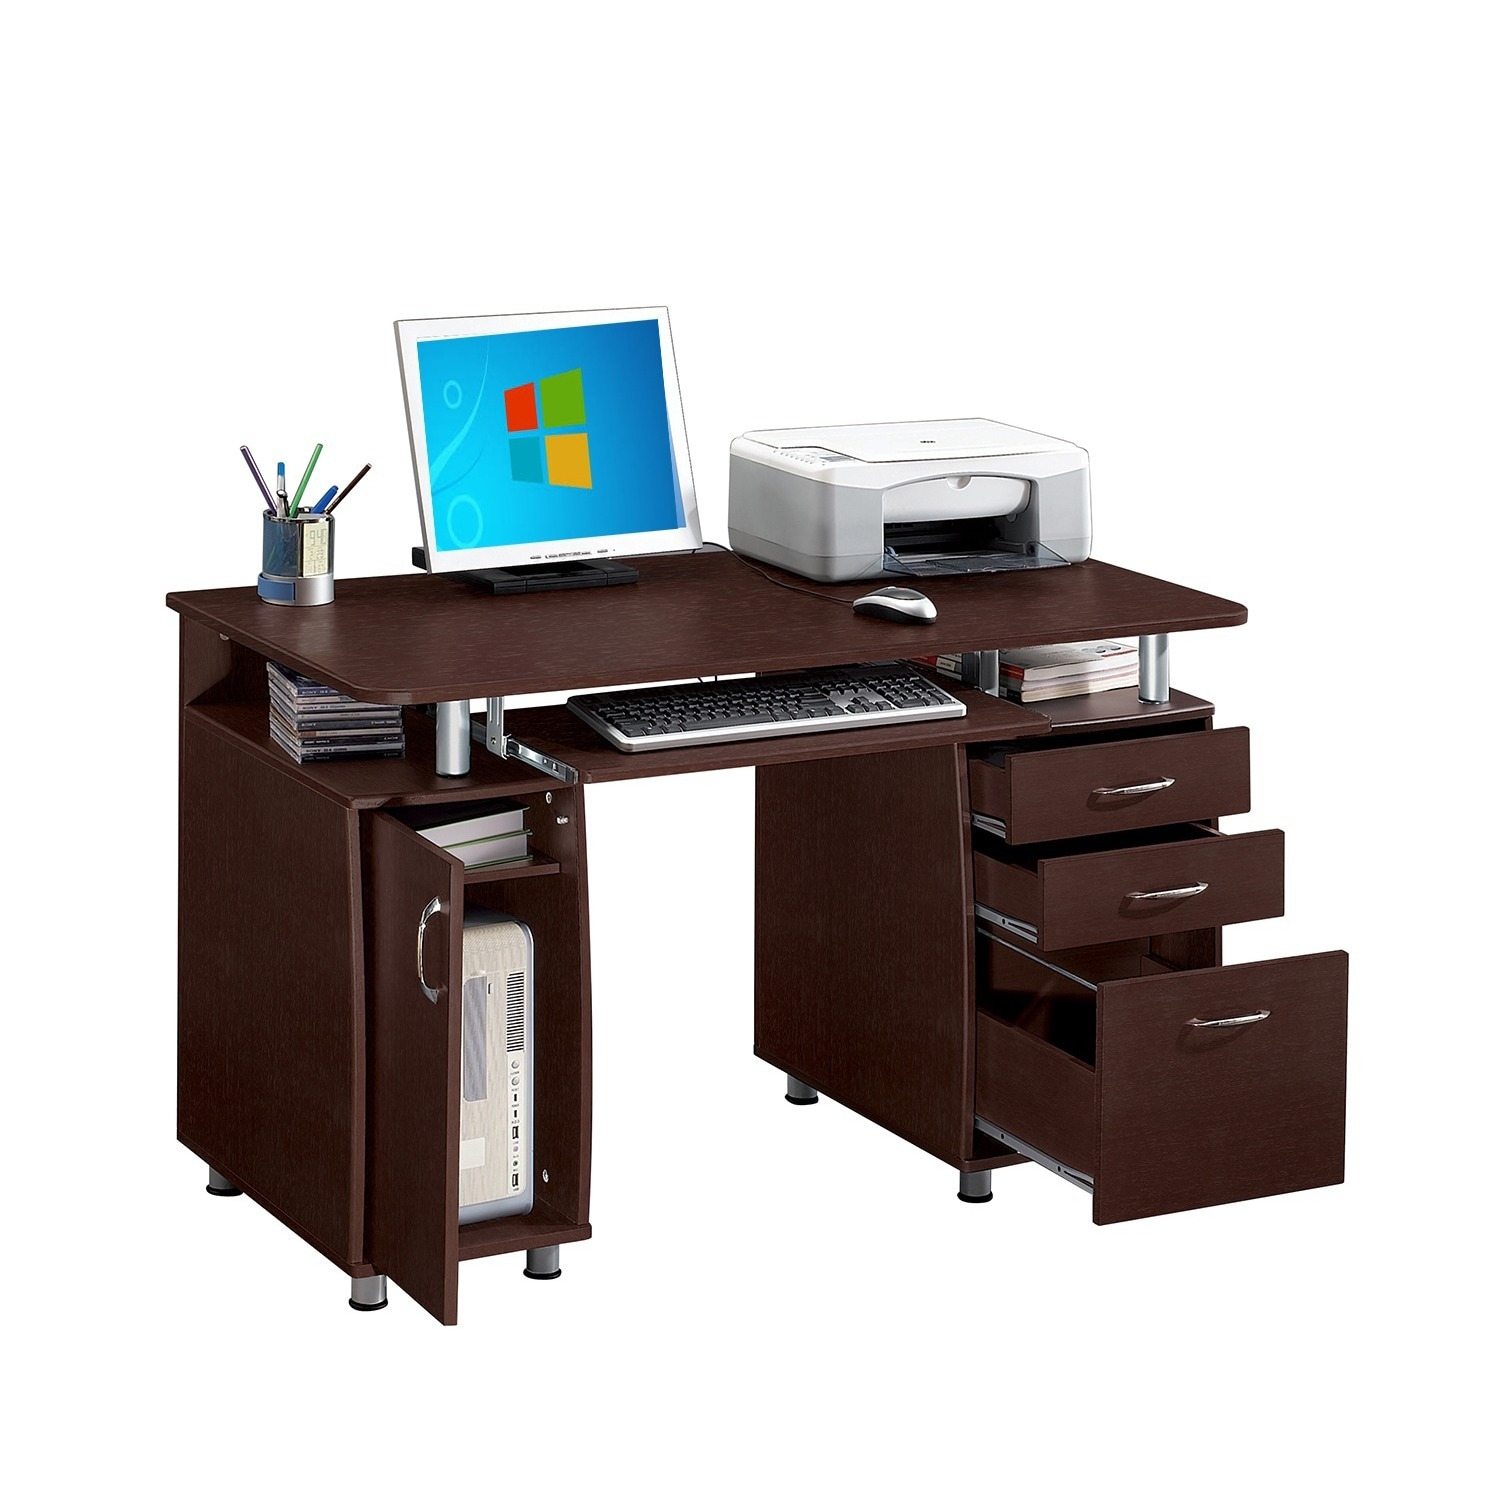 Modern Designs Multifunctional Office Desk With File Cabinet Free Shipping Today 16172157